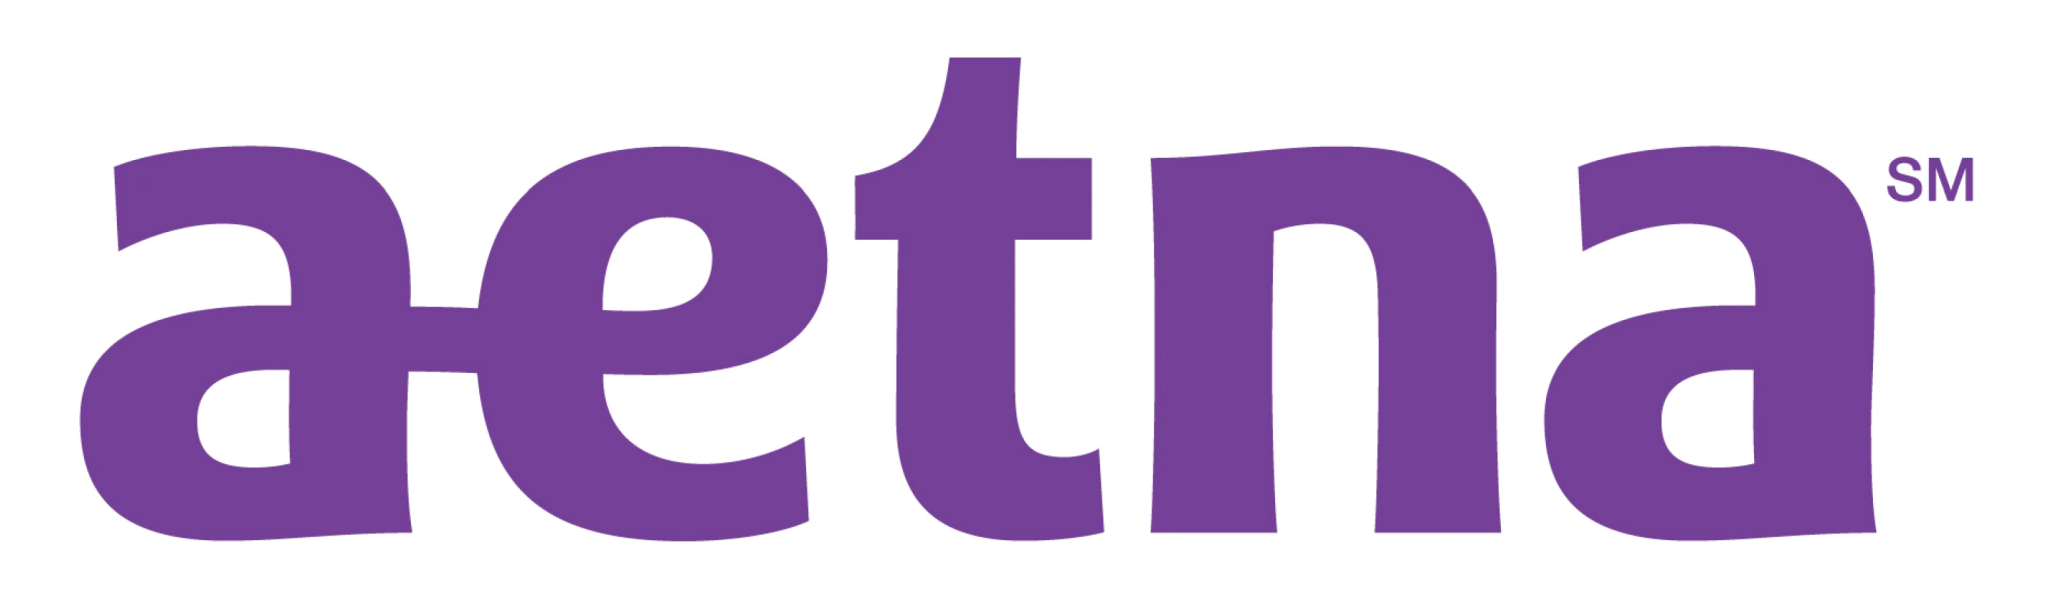 Aetna Transparent Background